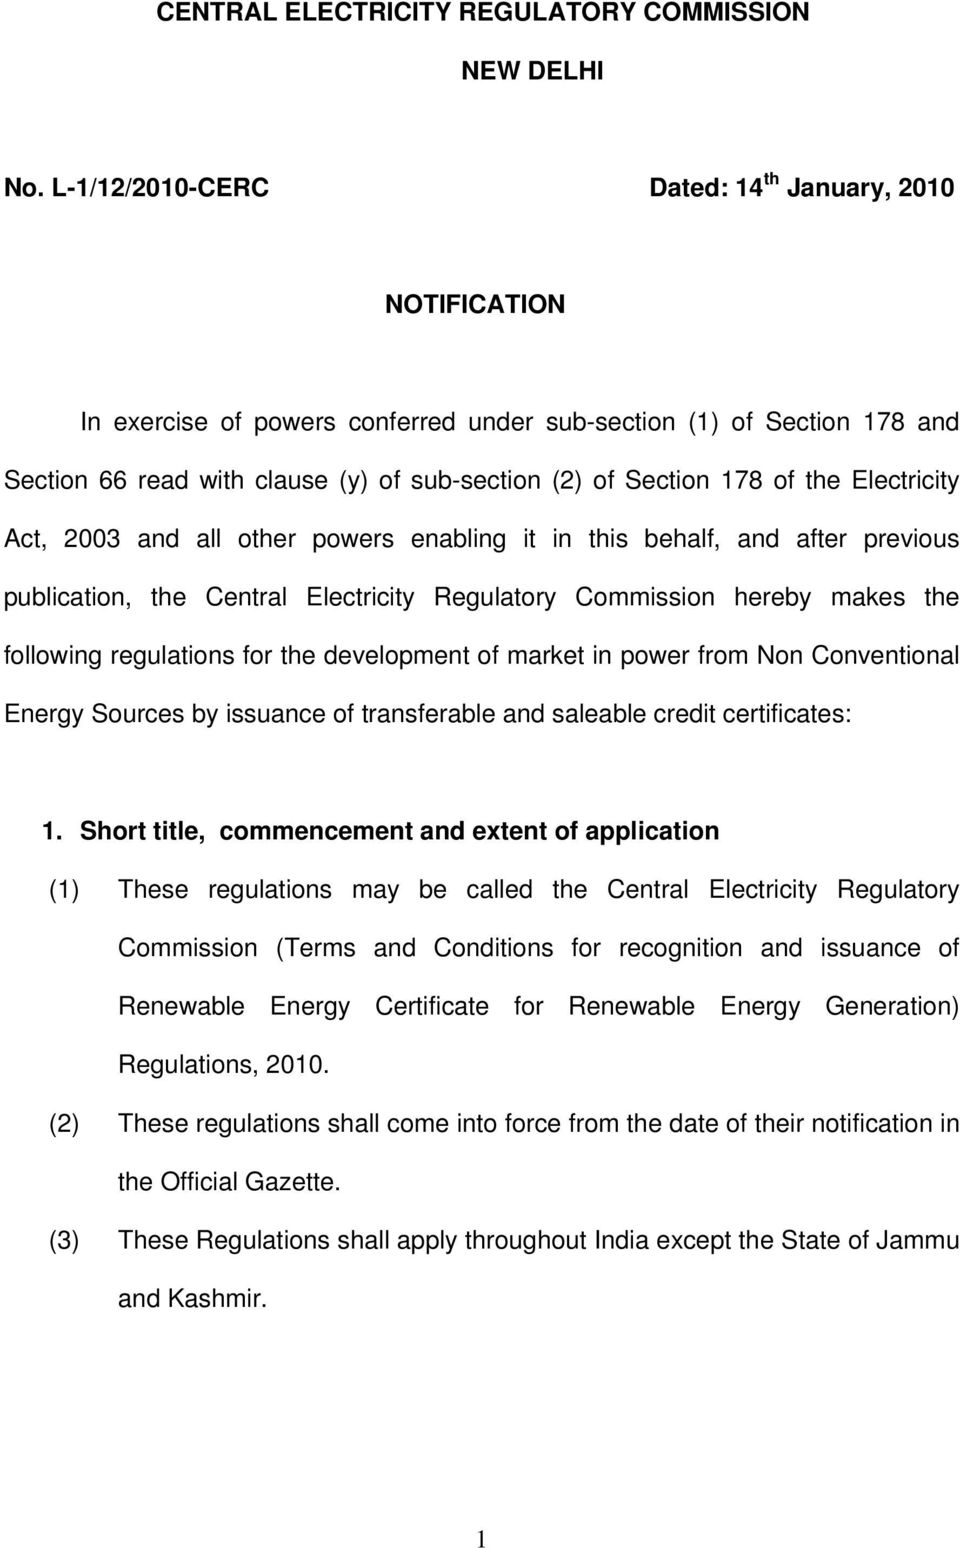 the Electricity Act, 2003 and all other powers enabling it in this behalf, and after previous publication, the Central Electricity Regulatory Commission hereby makes the following regulations for the